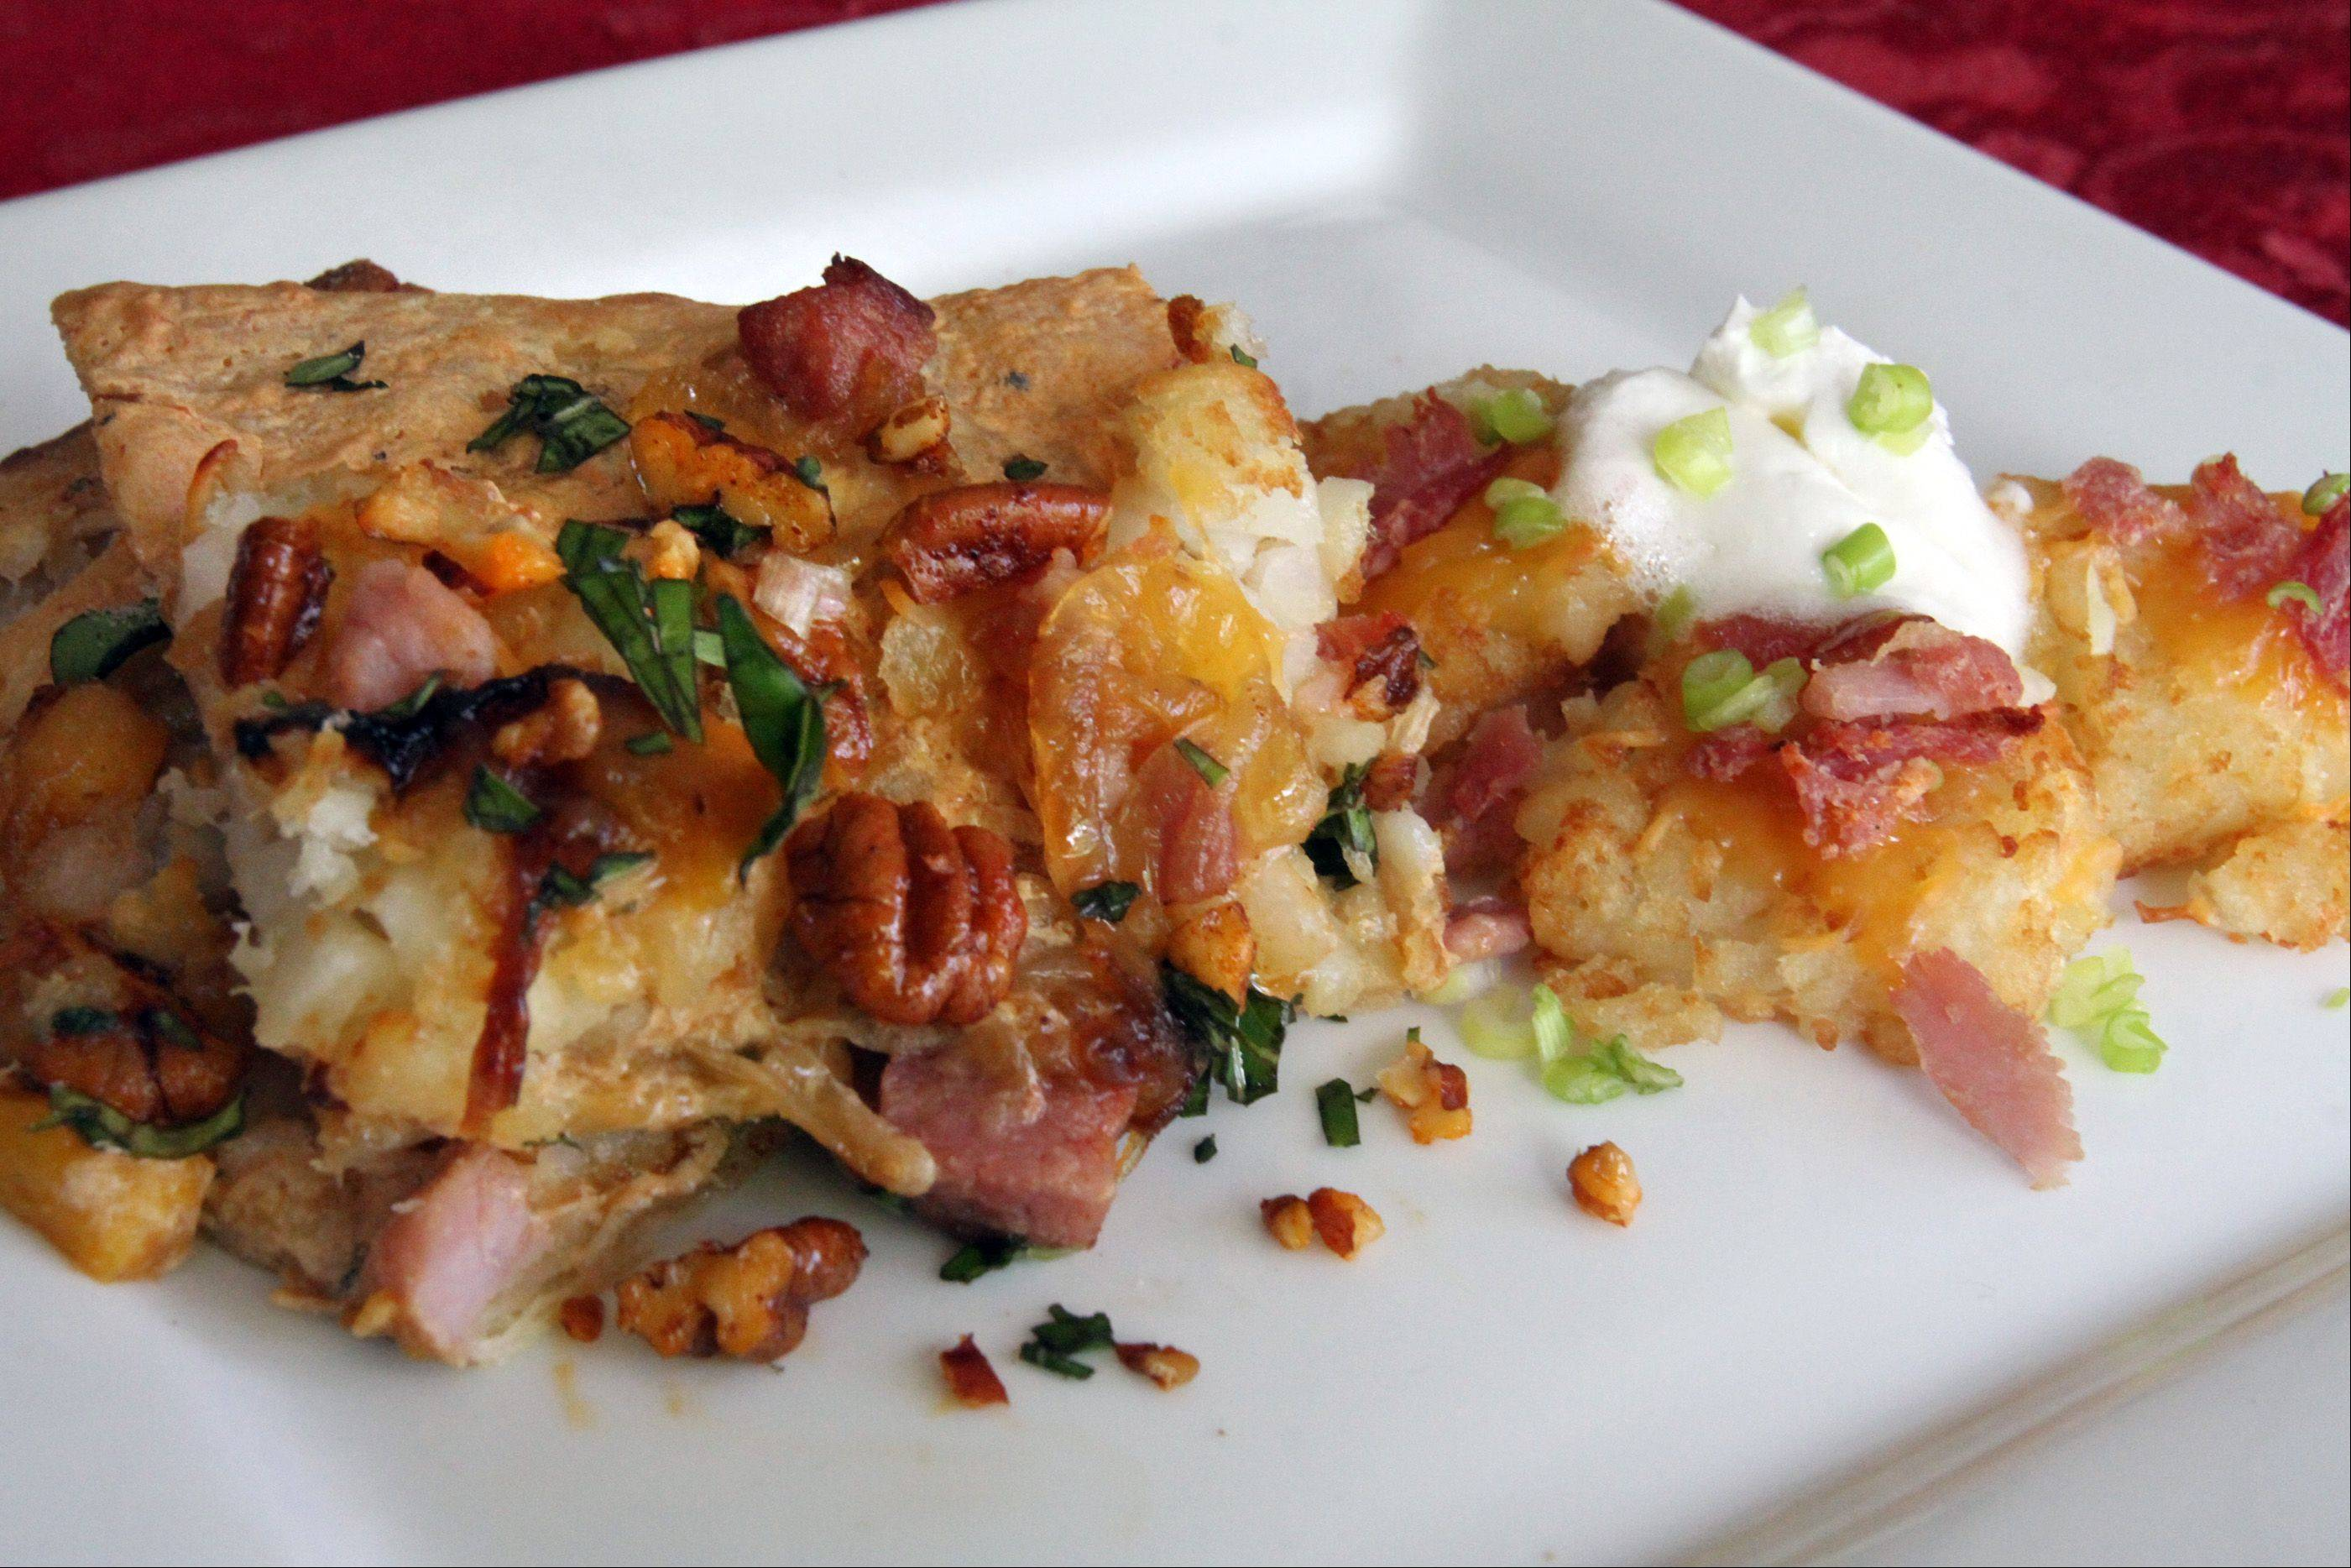 Jamie Andrade turned smoked ham, peaches, pecans and tater tots into a cheesy flatbread, potato cake combo.